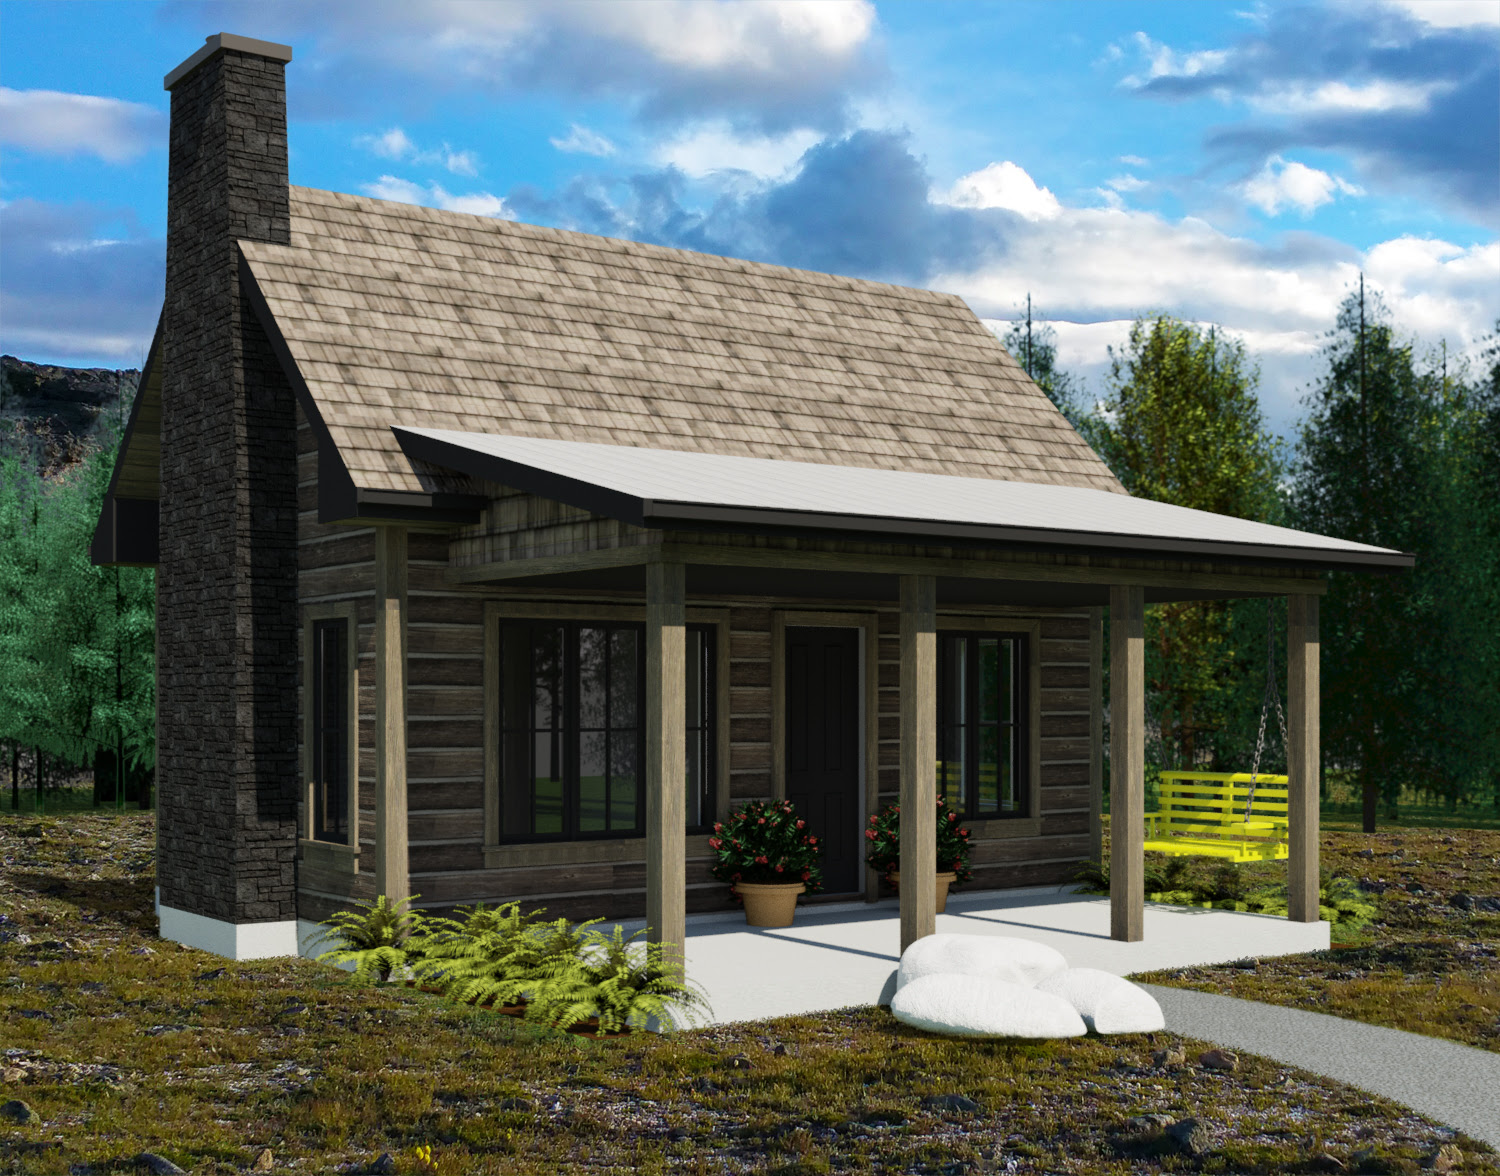 The Yukon Tiny House Plans by Robinson Residential - Contemporary Small House Plans